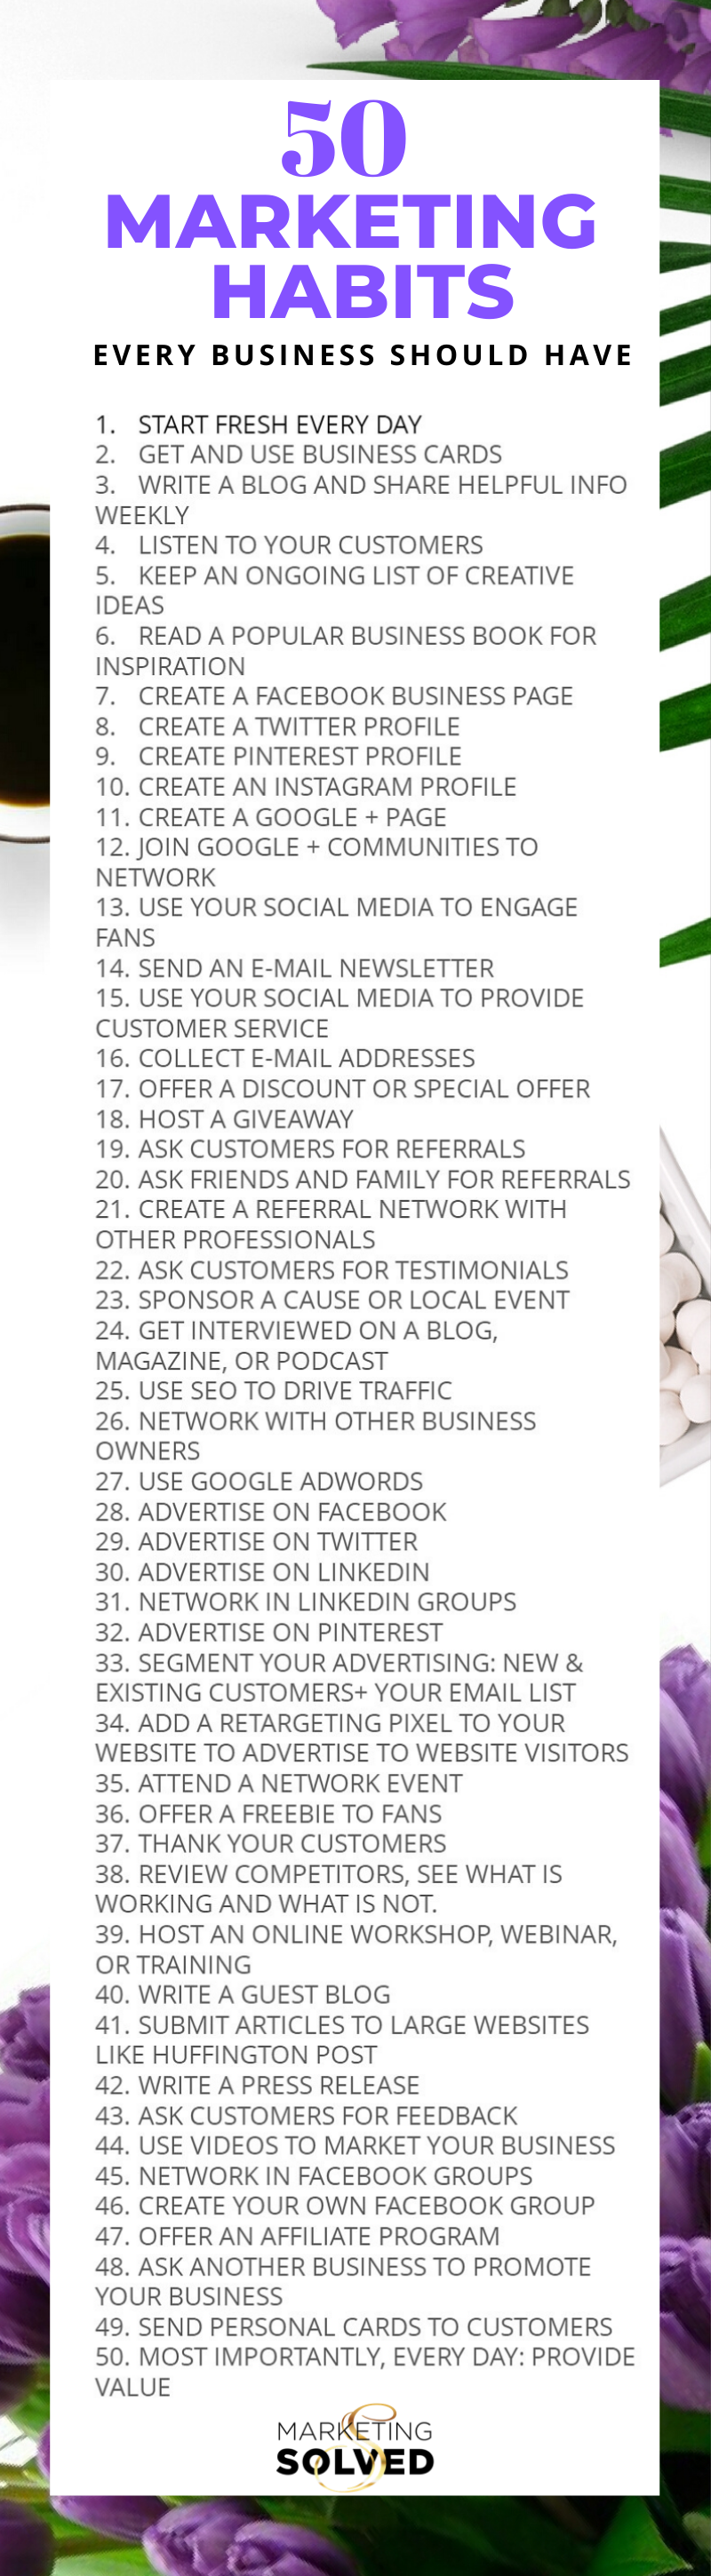 Marketing Habits for Small Business Owners